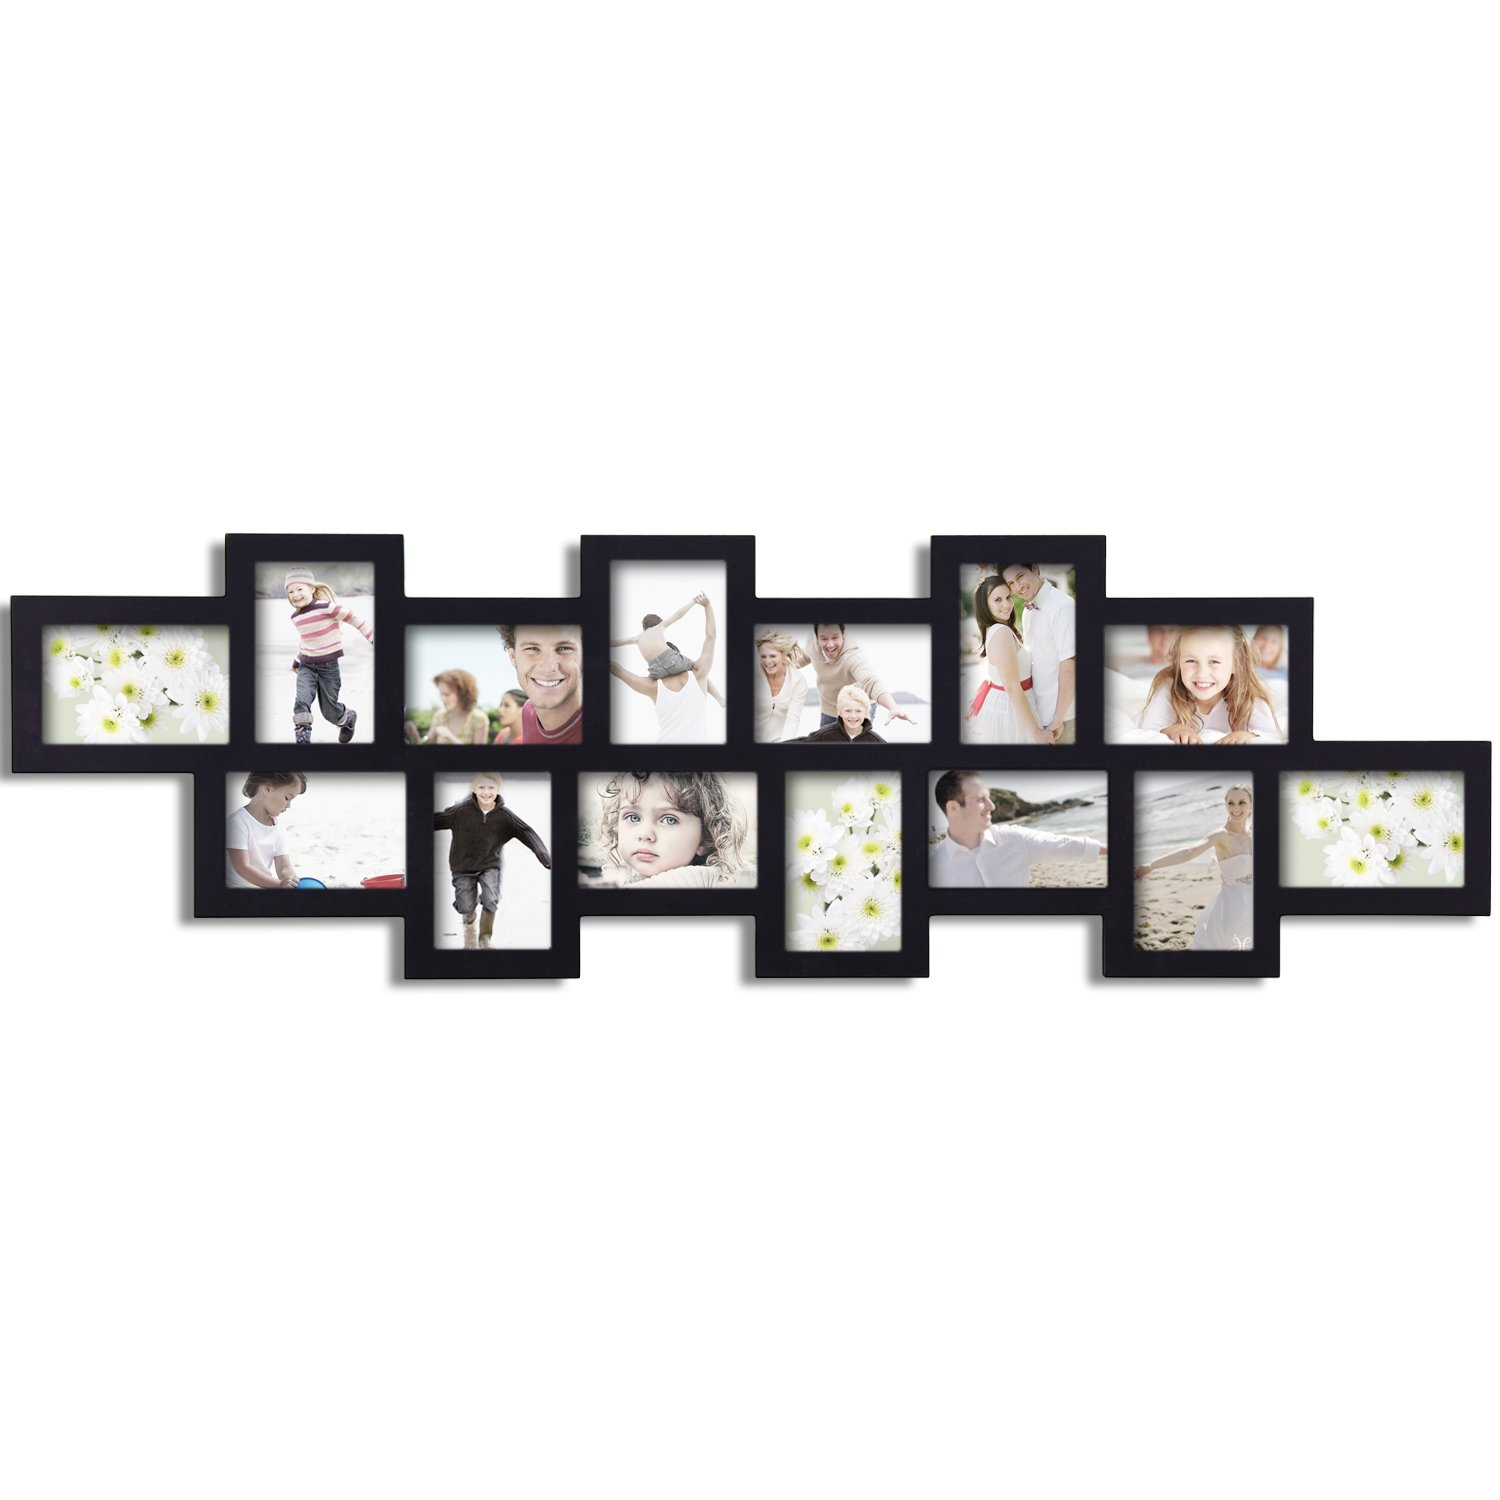 adeco 14 opening 4x6 black wood wall collage picture. Black Bedroom Furniture Sets. Home Design Ideas